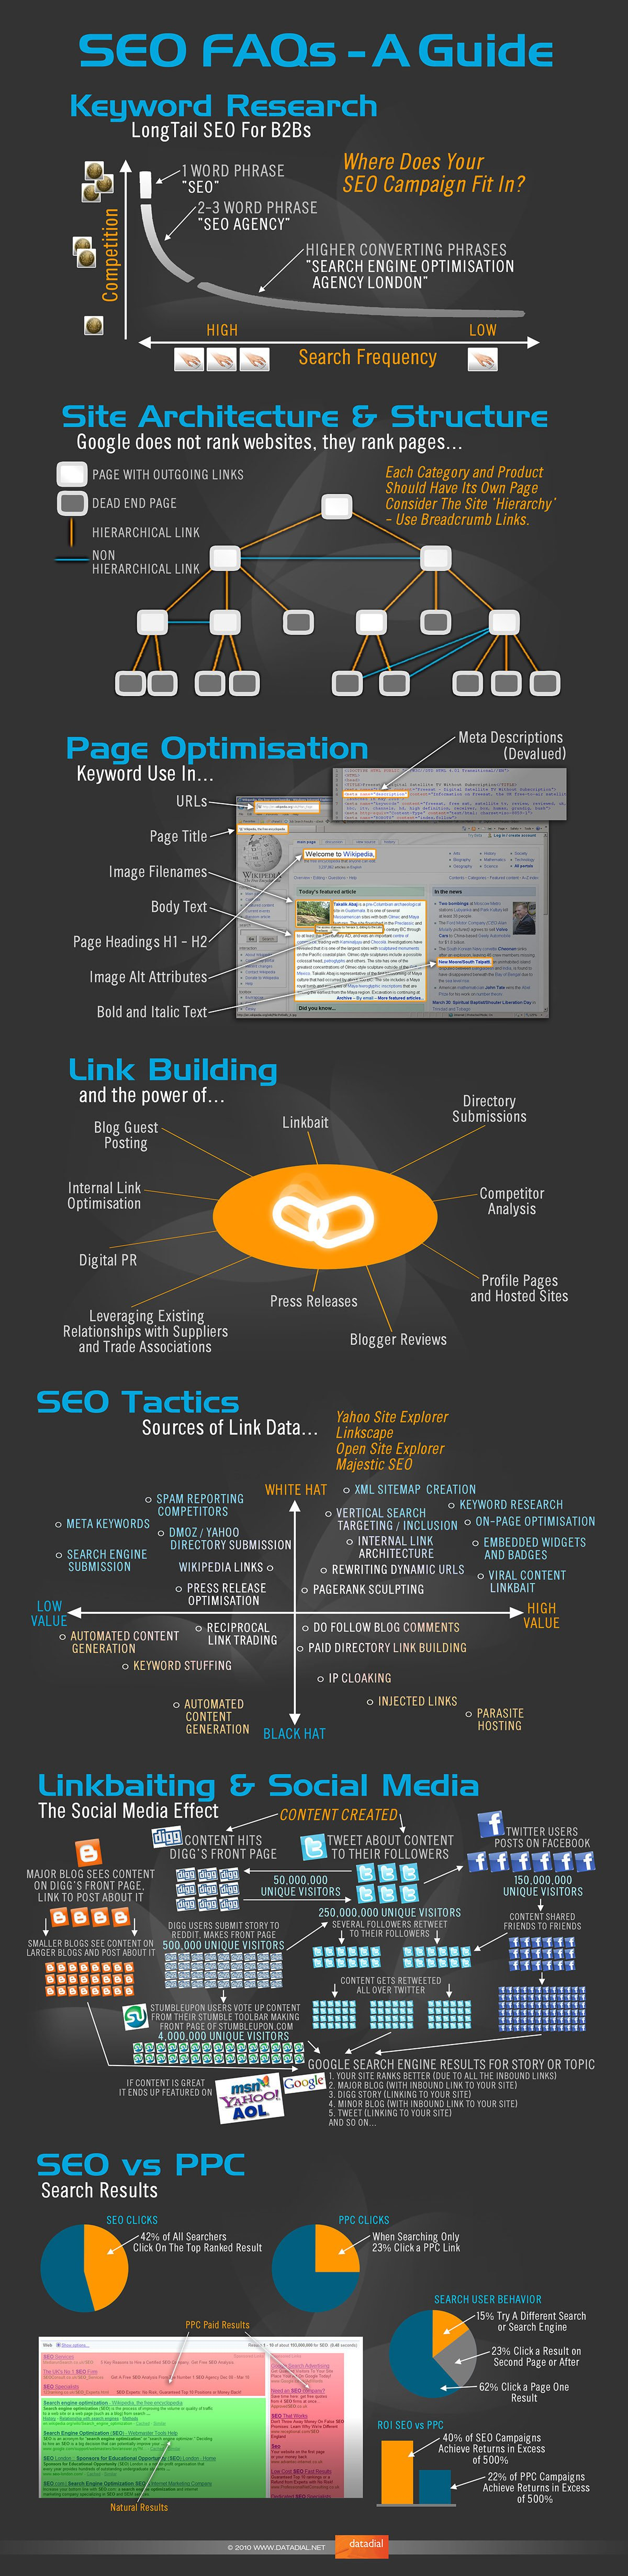 infographie-referencement-seo